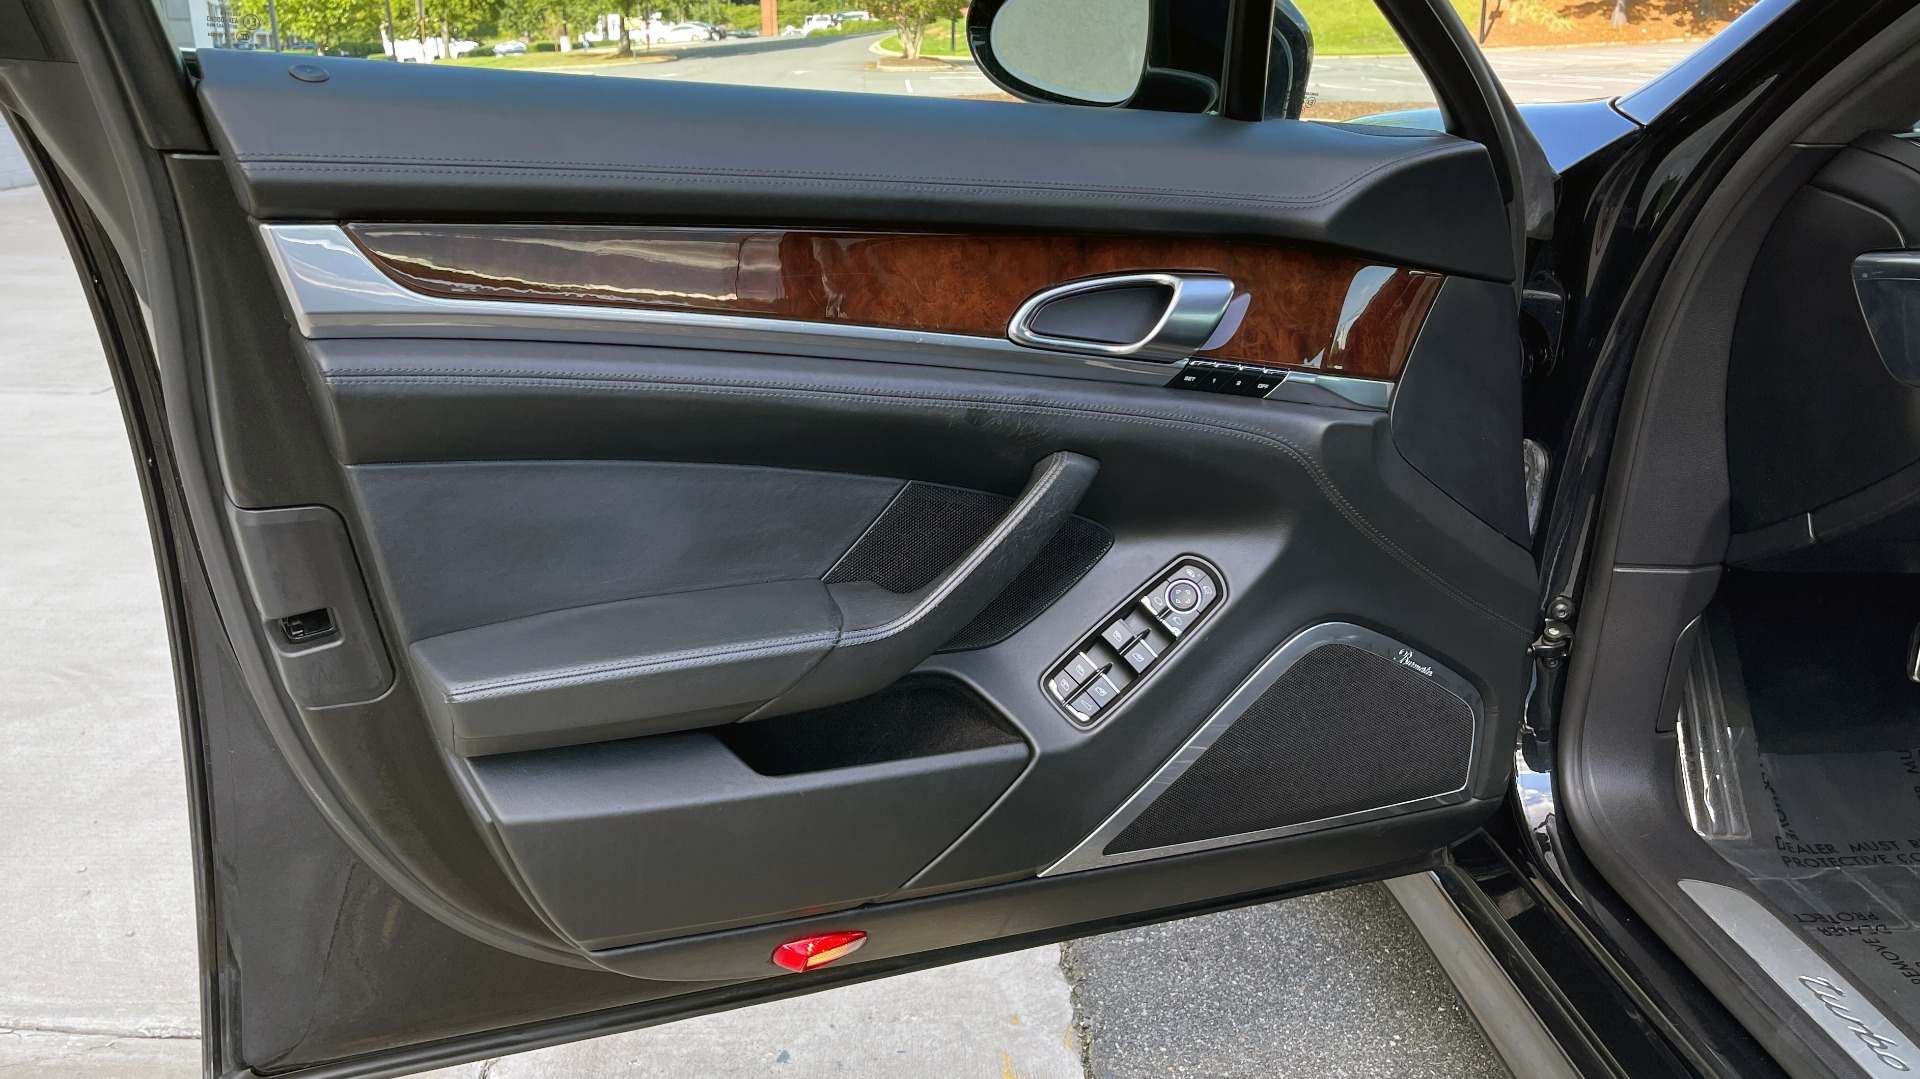 Used 2010 Porsche PANAMERA 4DR HB TURBO / SPORT CHRONO / BURMESTER / AUTO CLIMATE CONTROL for sale $40,995 at Formula Imports in Charlotte NC 28227 30